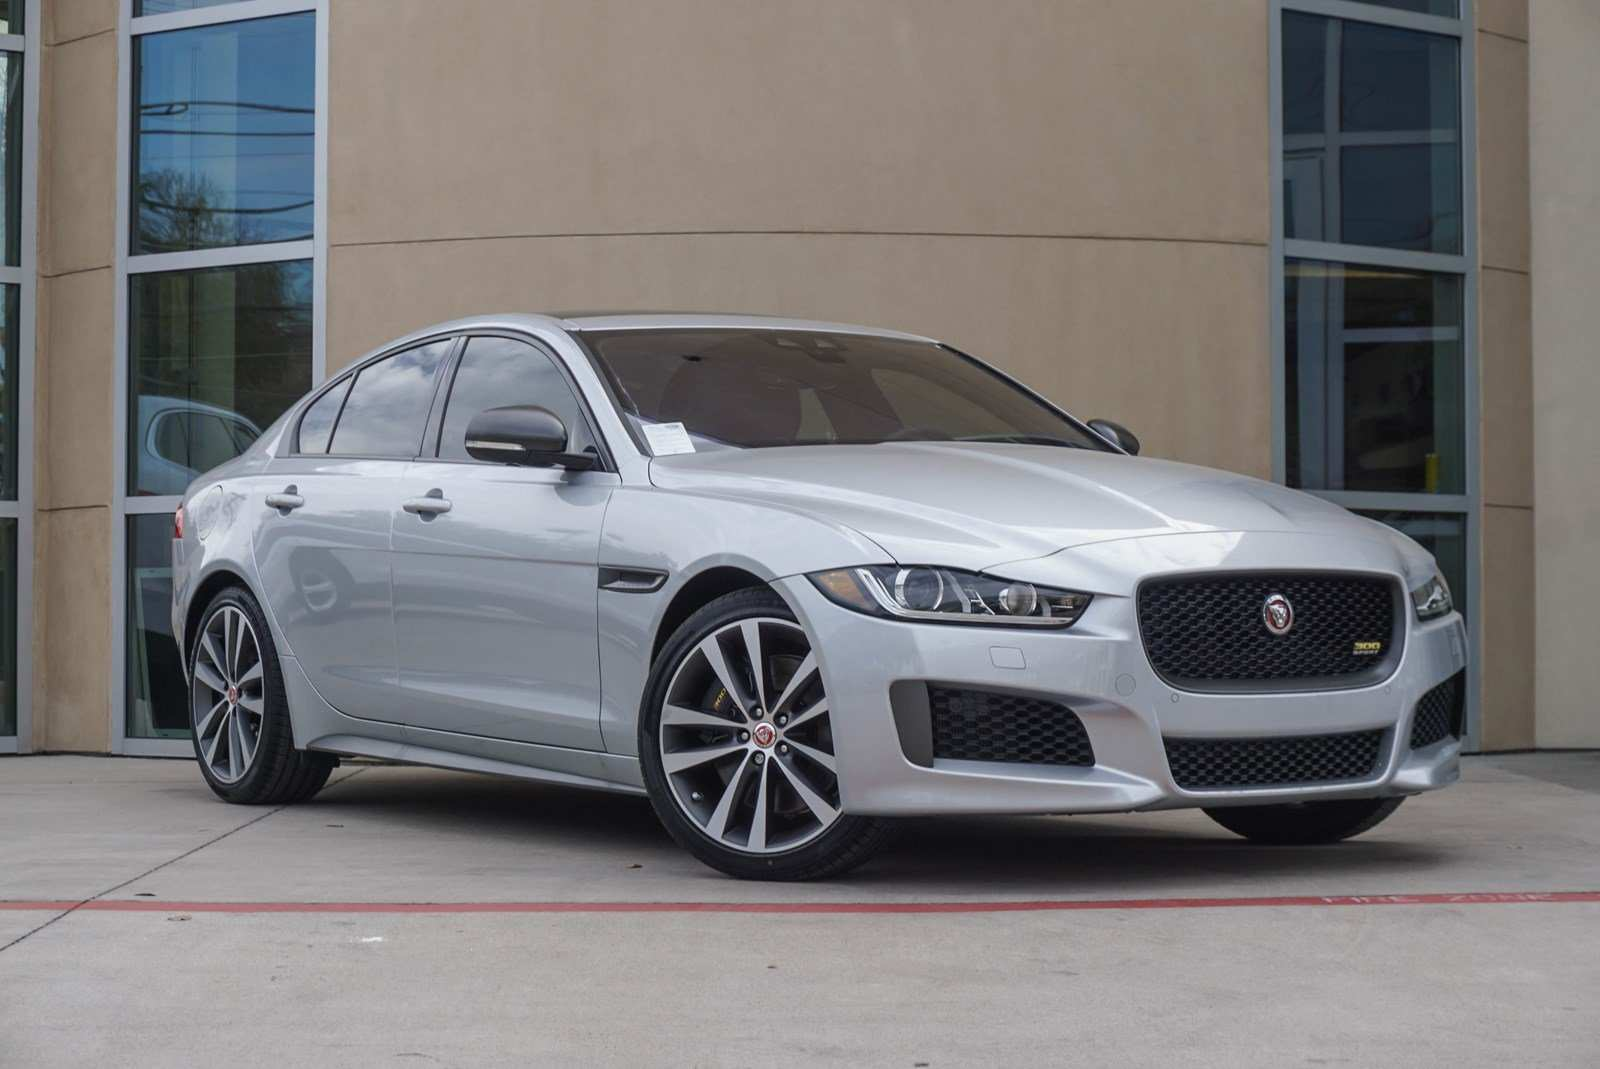 94 Best Review Jaguar Sport 2019 Rumors with Jaguar Sport 2019